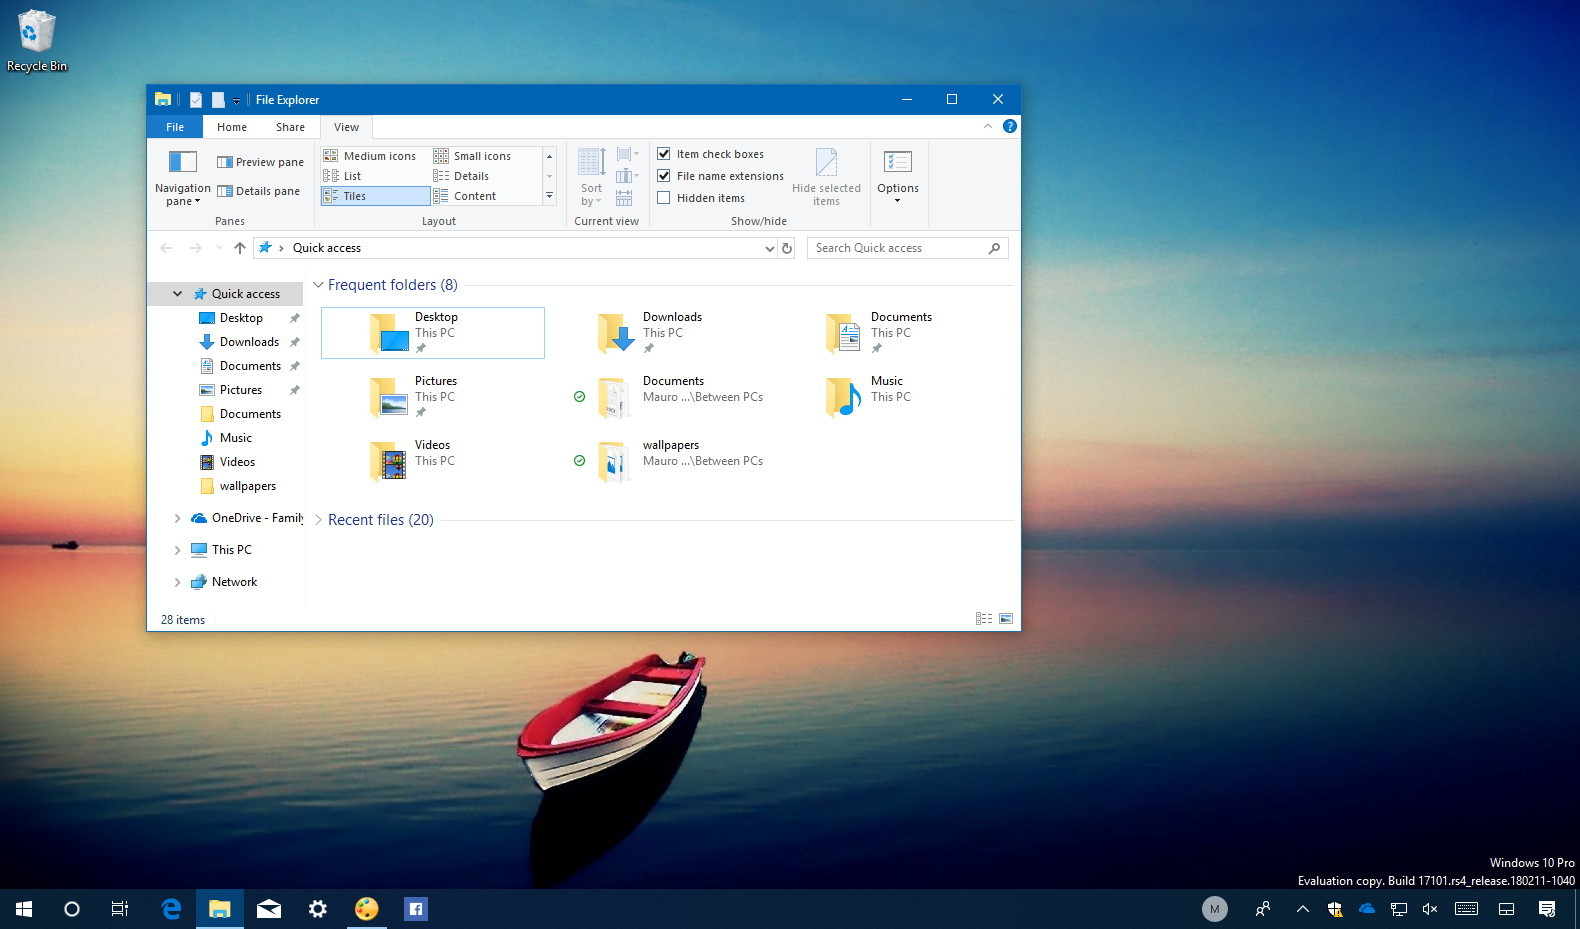 How to disable OneDrive sync status icon in File Explorer on